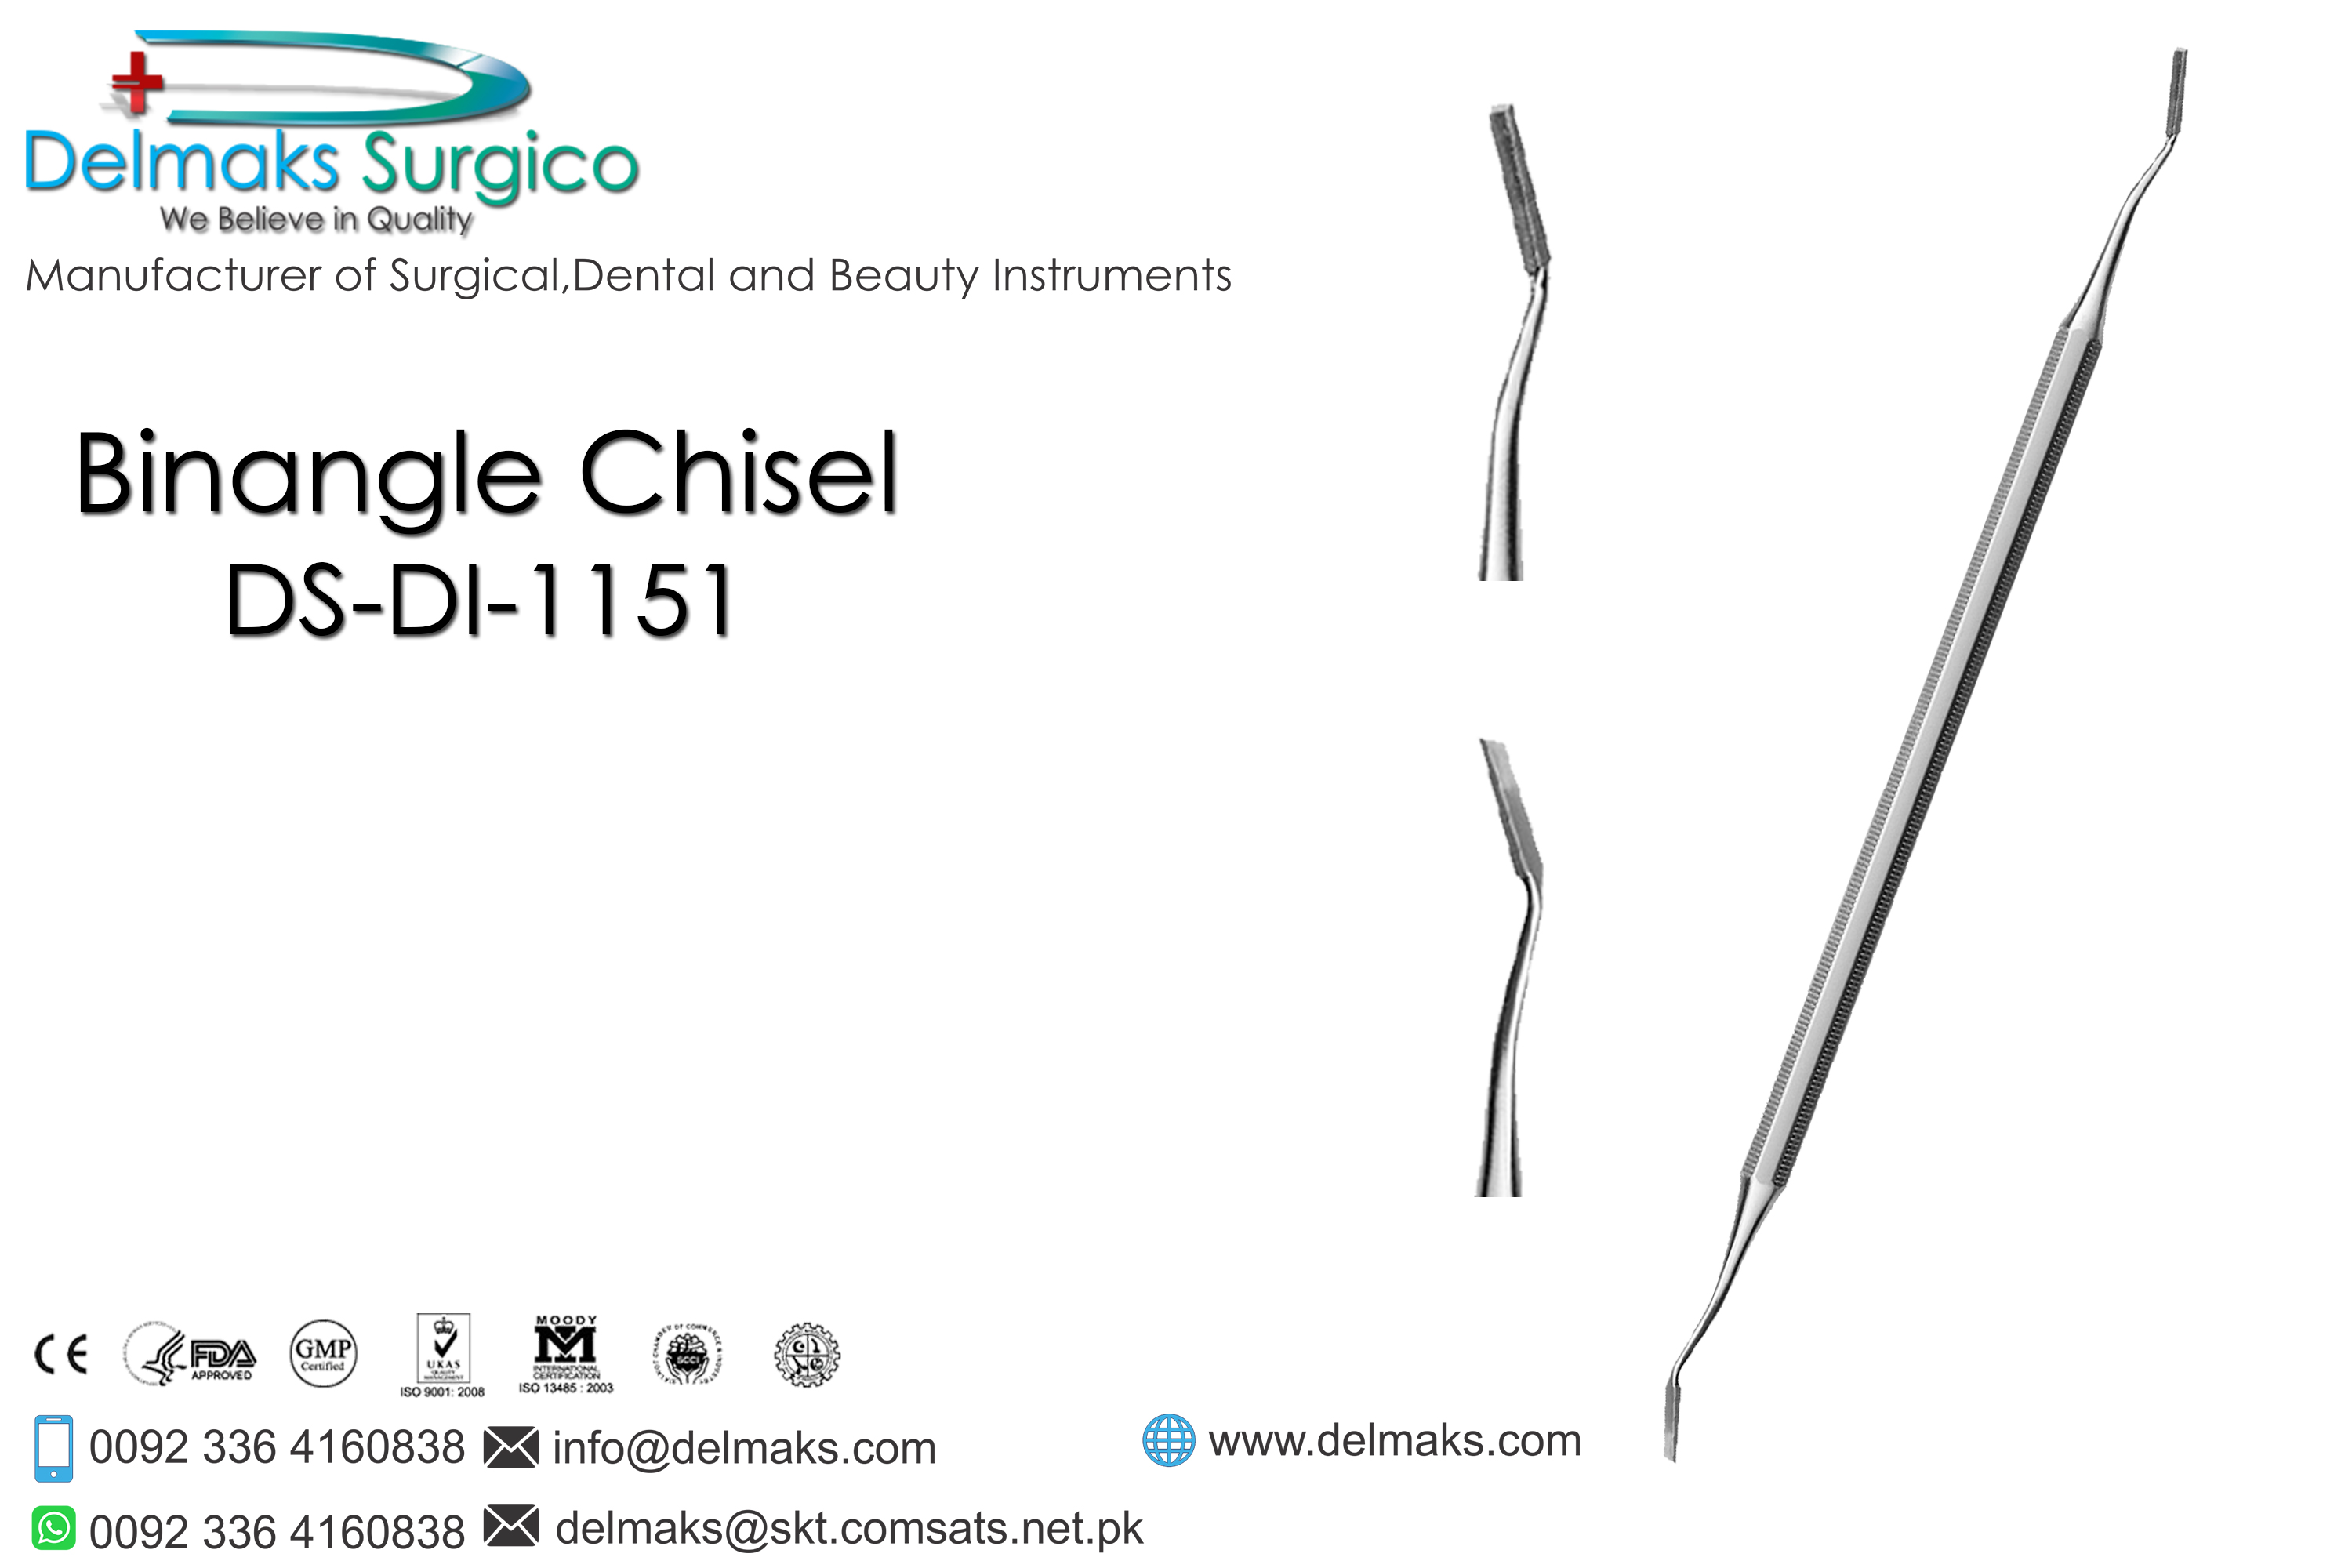 Binangle Chisel-Hand Cutting Instruments-Dental Instruments-Delmaks Surgico